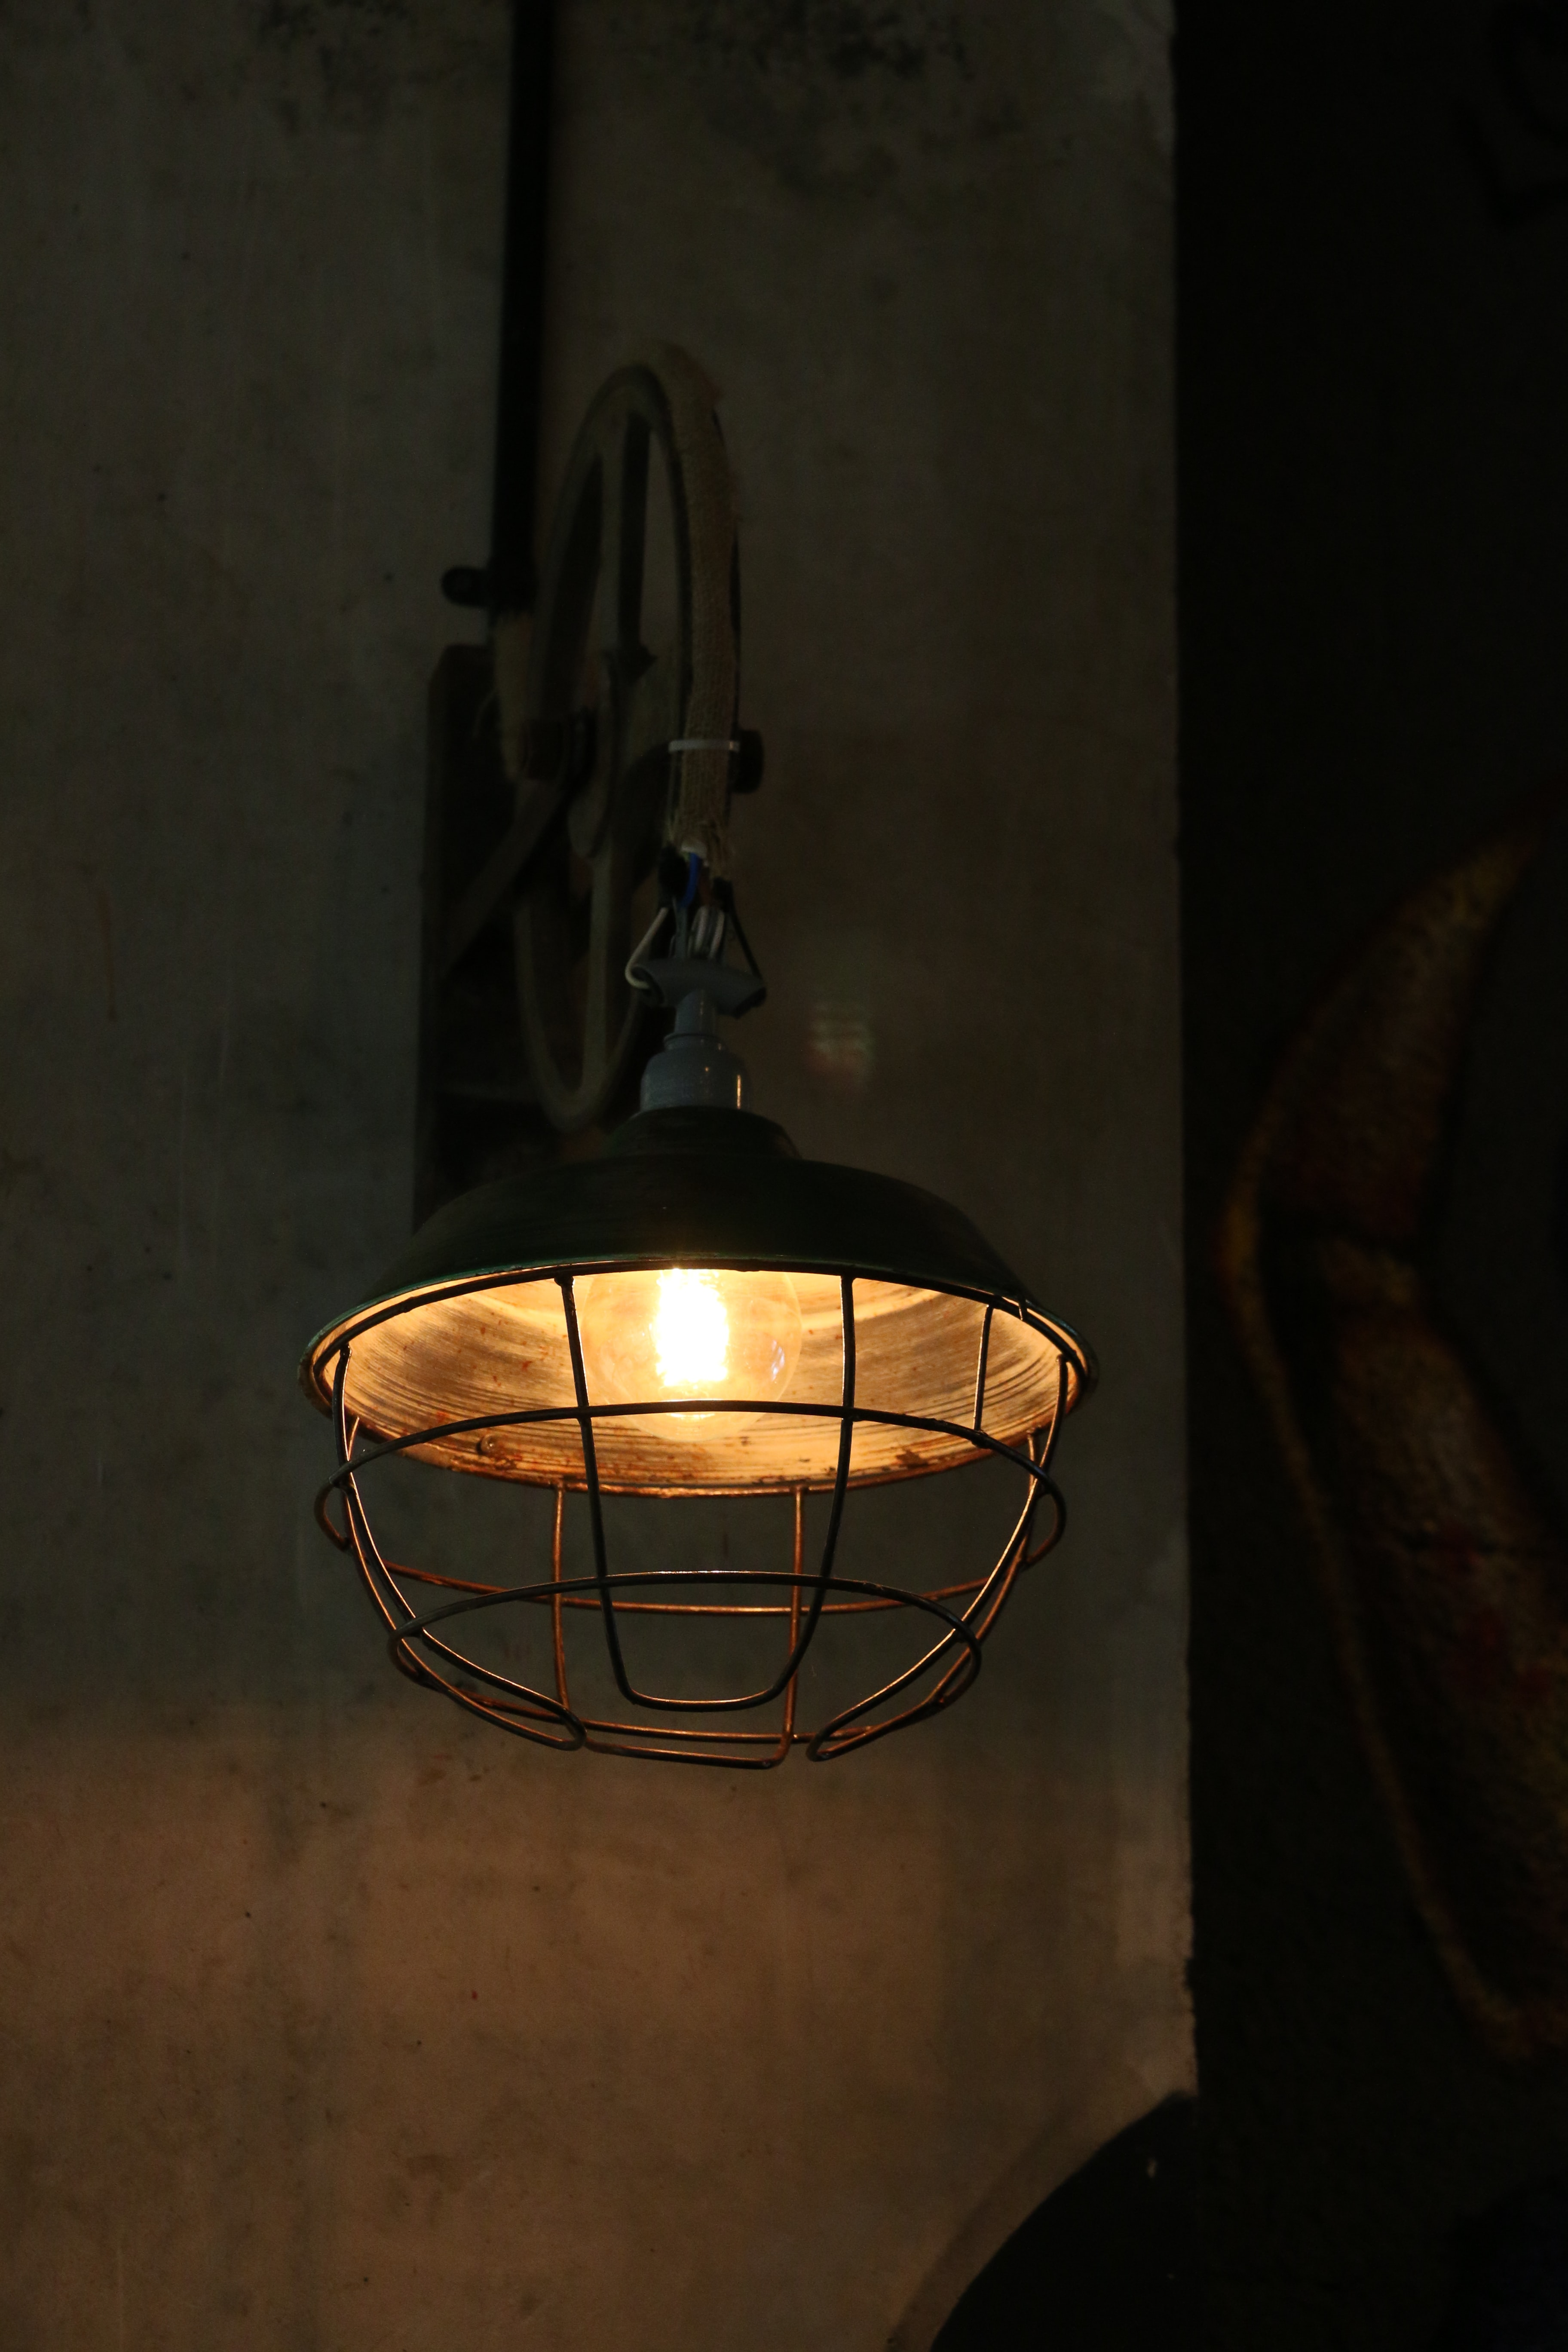 brown sconce with lights on